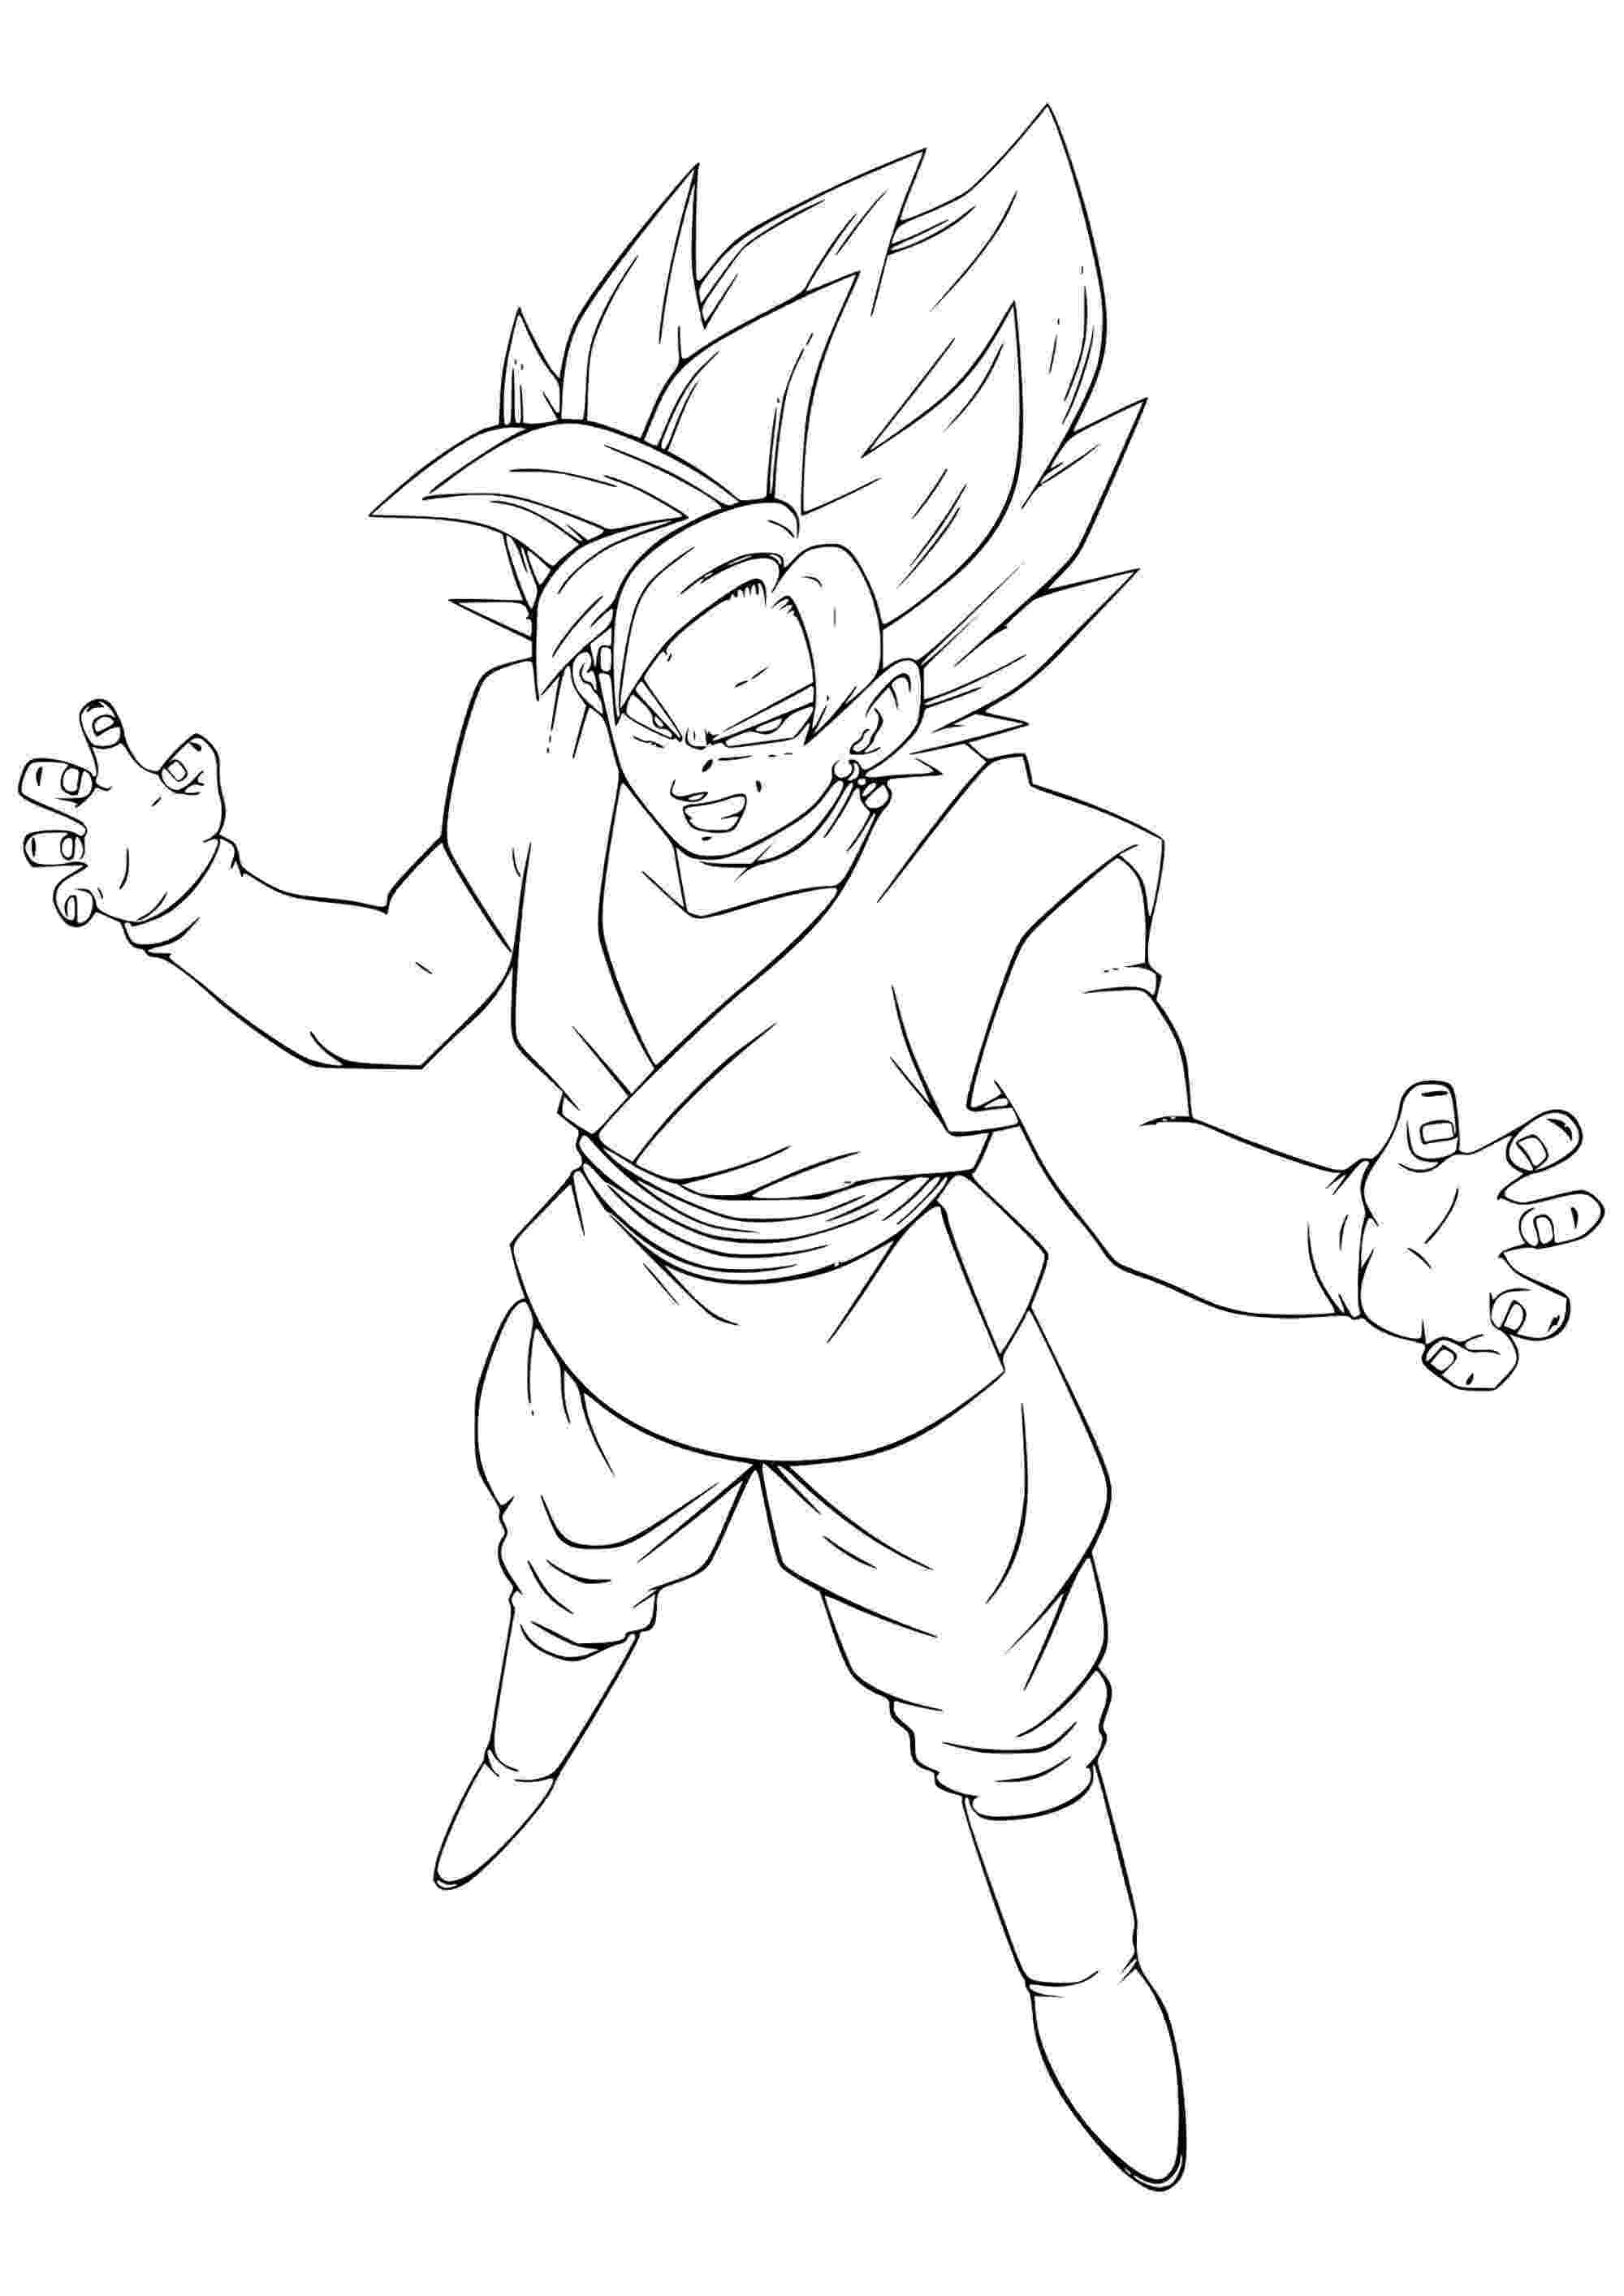 dragon ball coloring pages black pink goku dragon ball z kids coloring pages ball coloring dragon pages